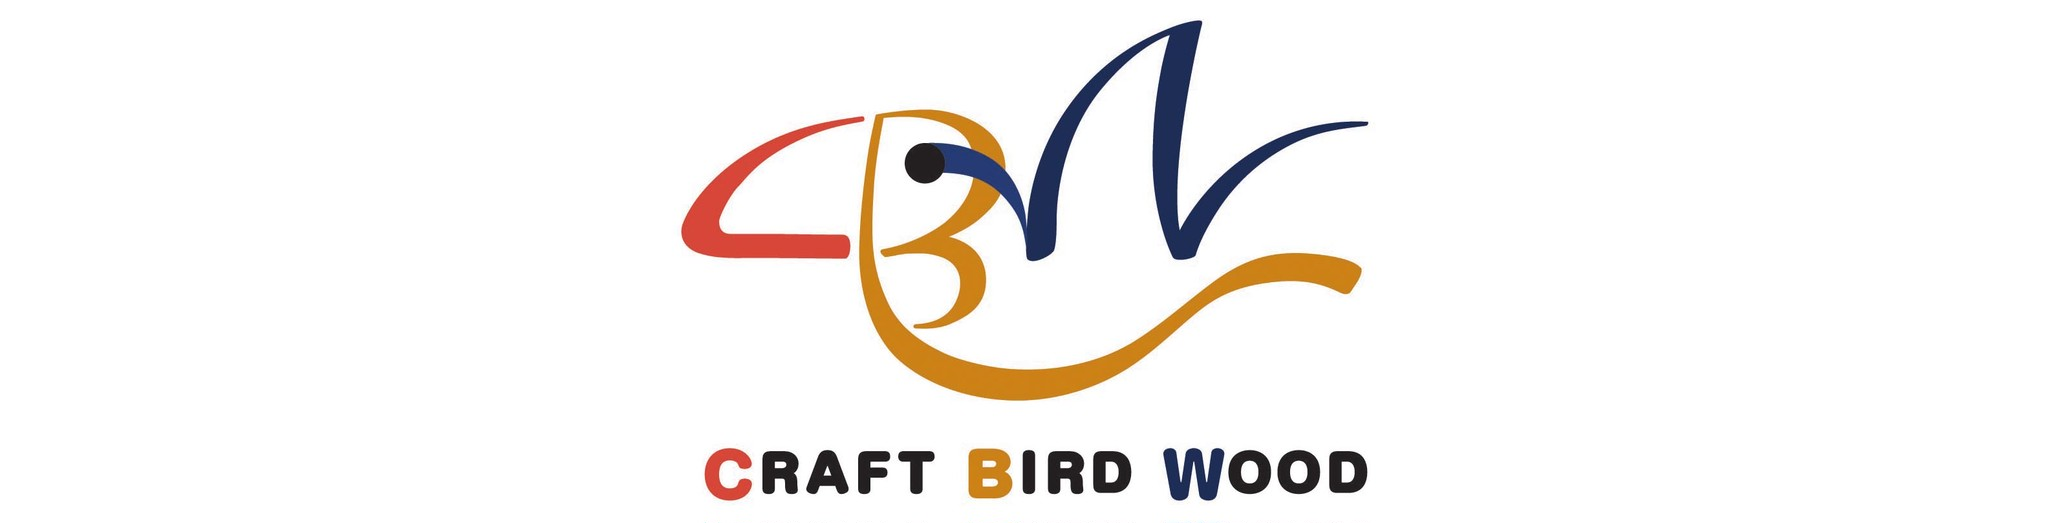 CRAFT BIRD WOOD